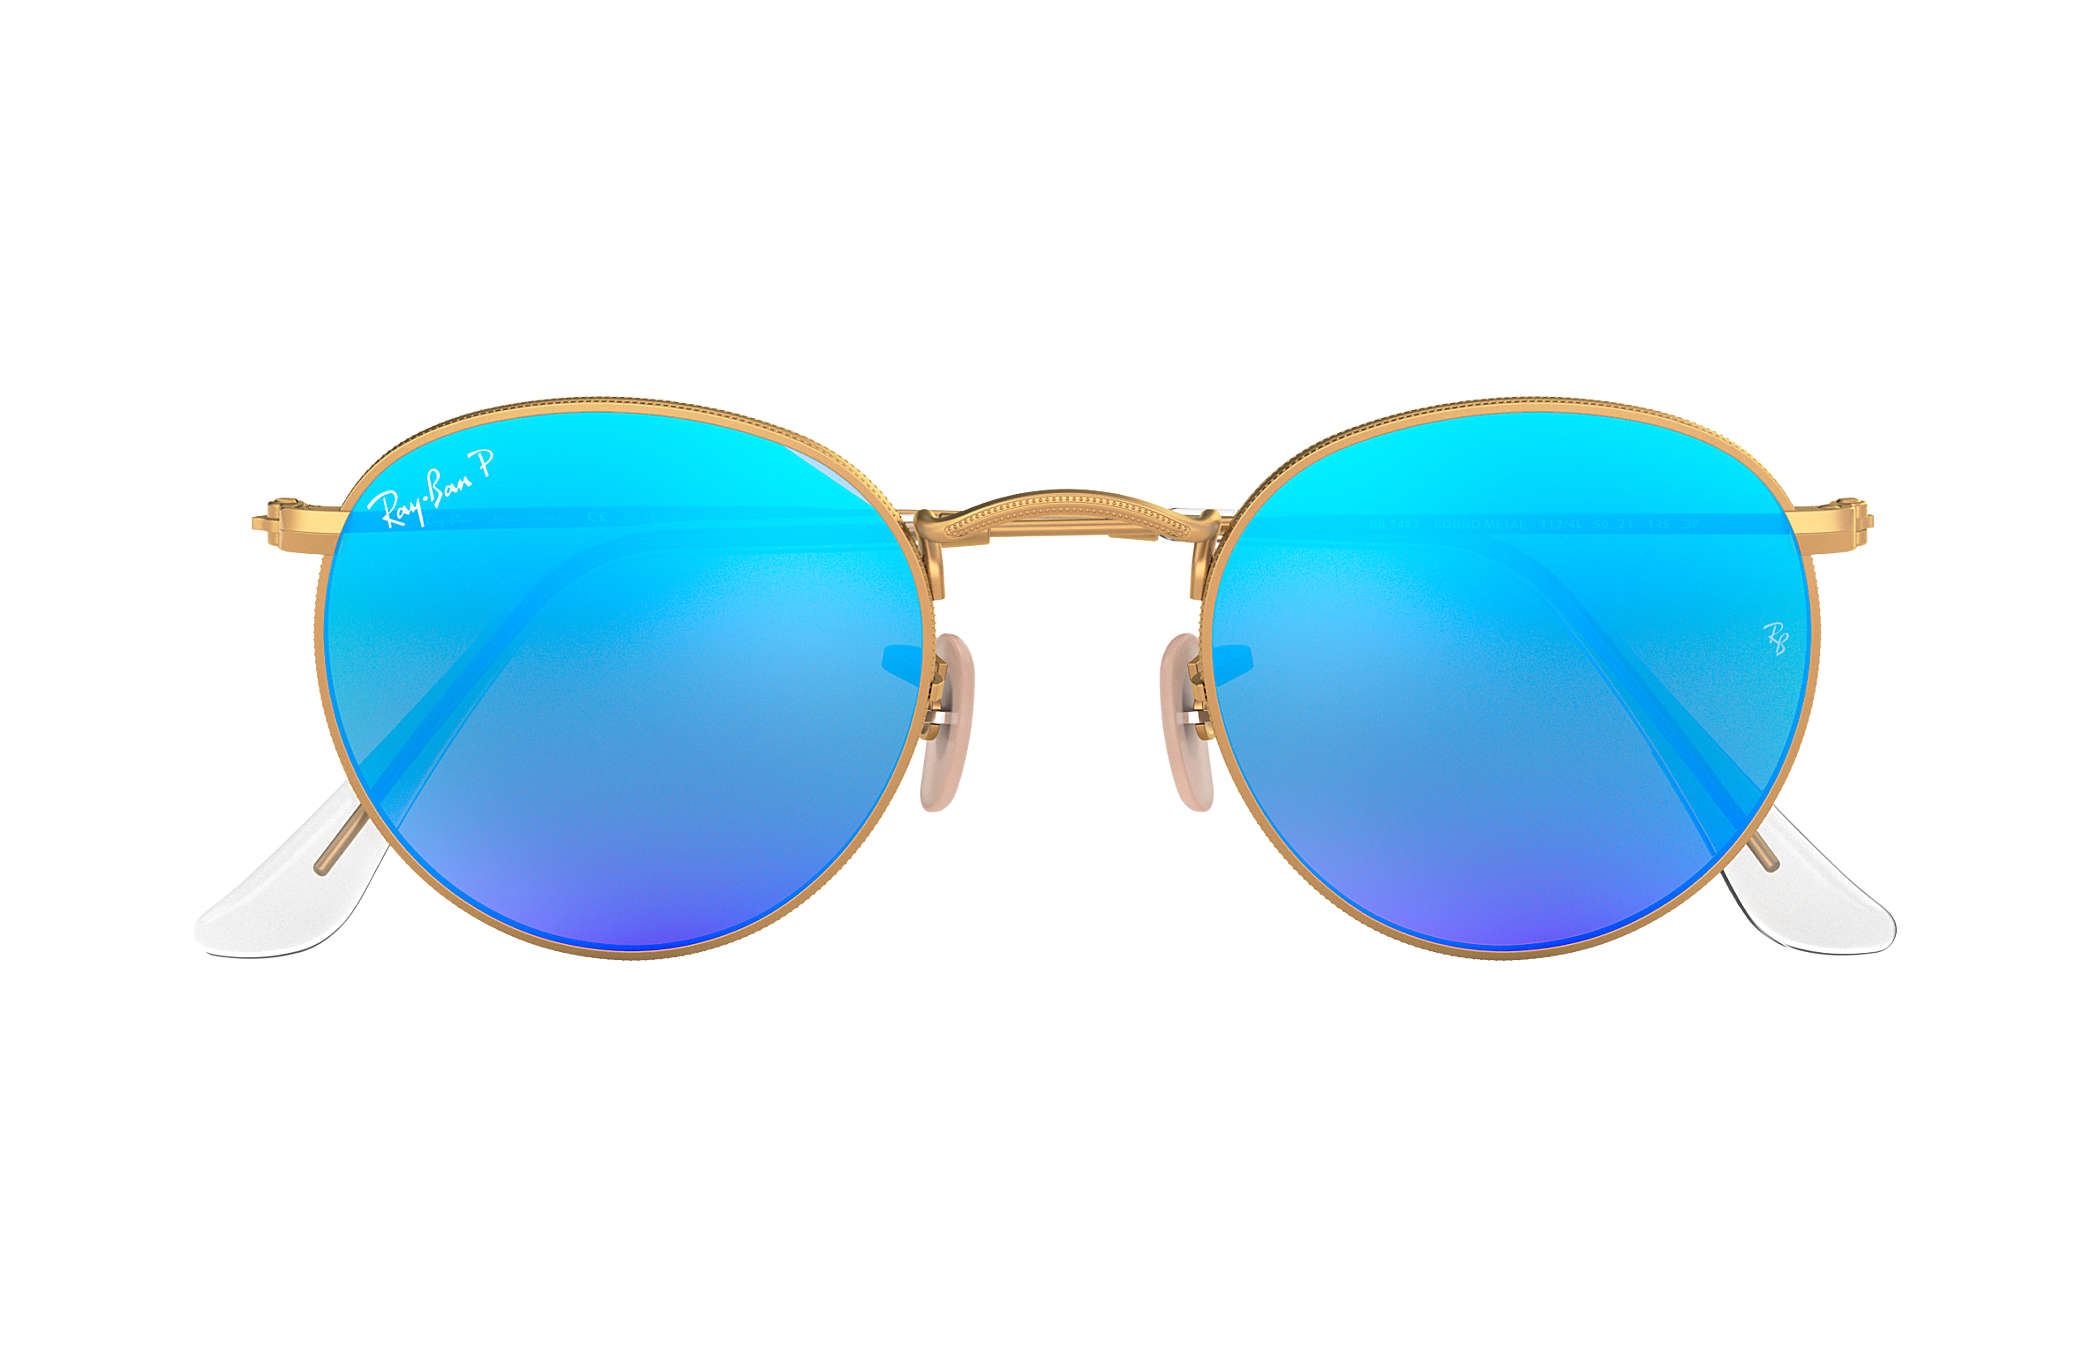 4255a509af1 Ray-Ban Round Flash Lenses RB3447 Gold - Metal - Blue Polarized ...